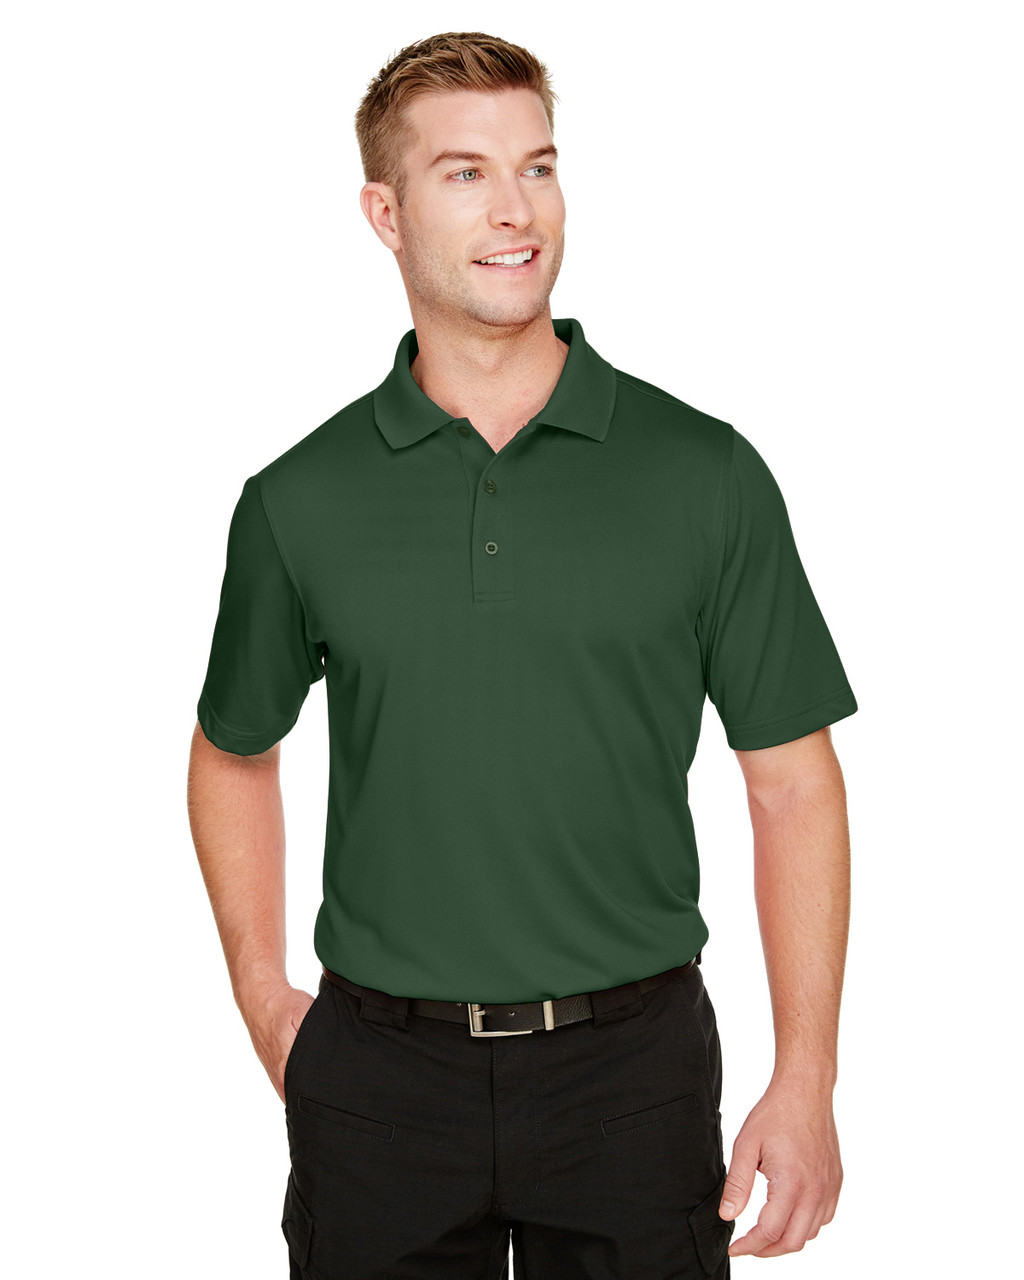 Dark Green - M348 Harriton Men's Advantage Snag Protection Plus IL Polo Shirt | BlankClothing.ca